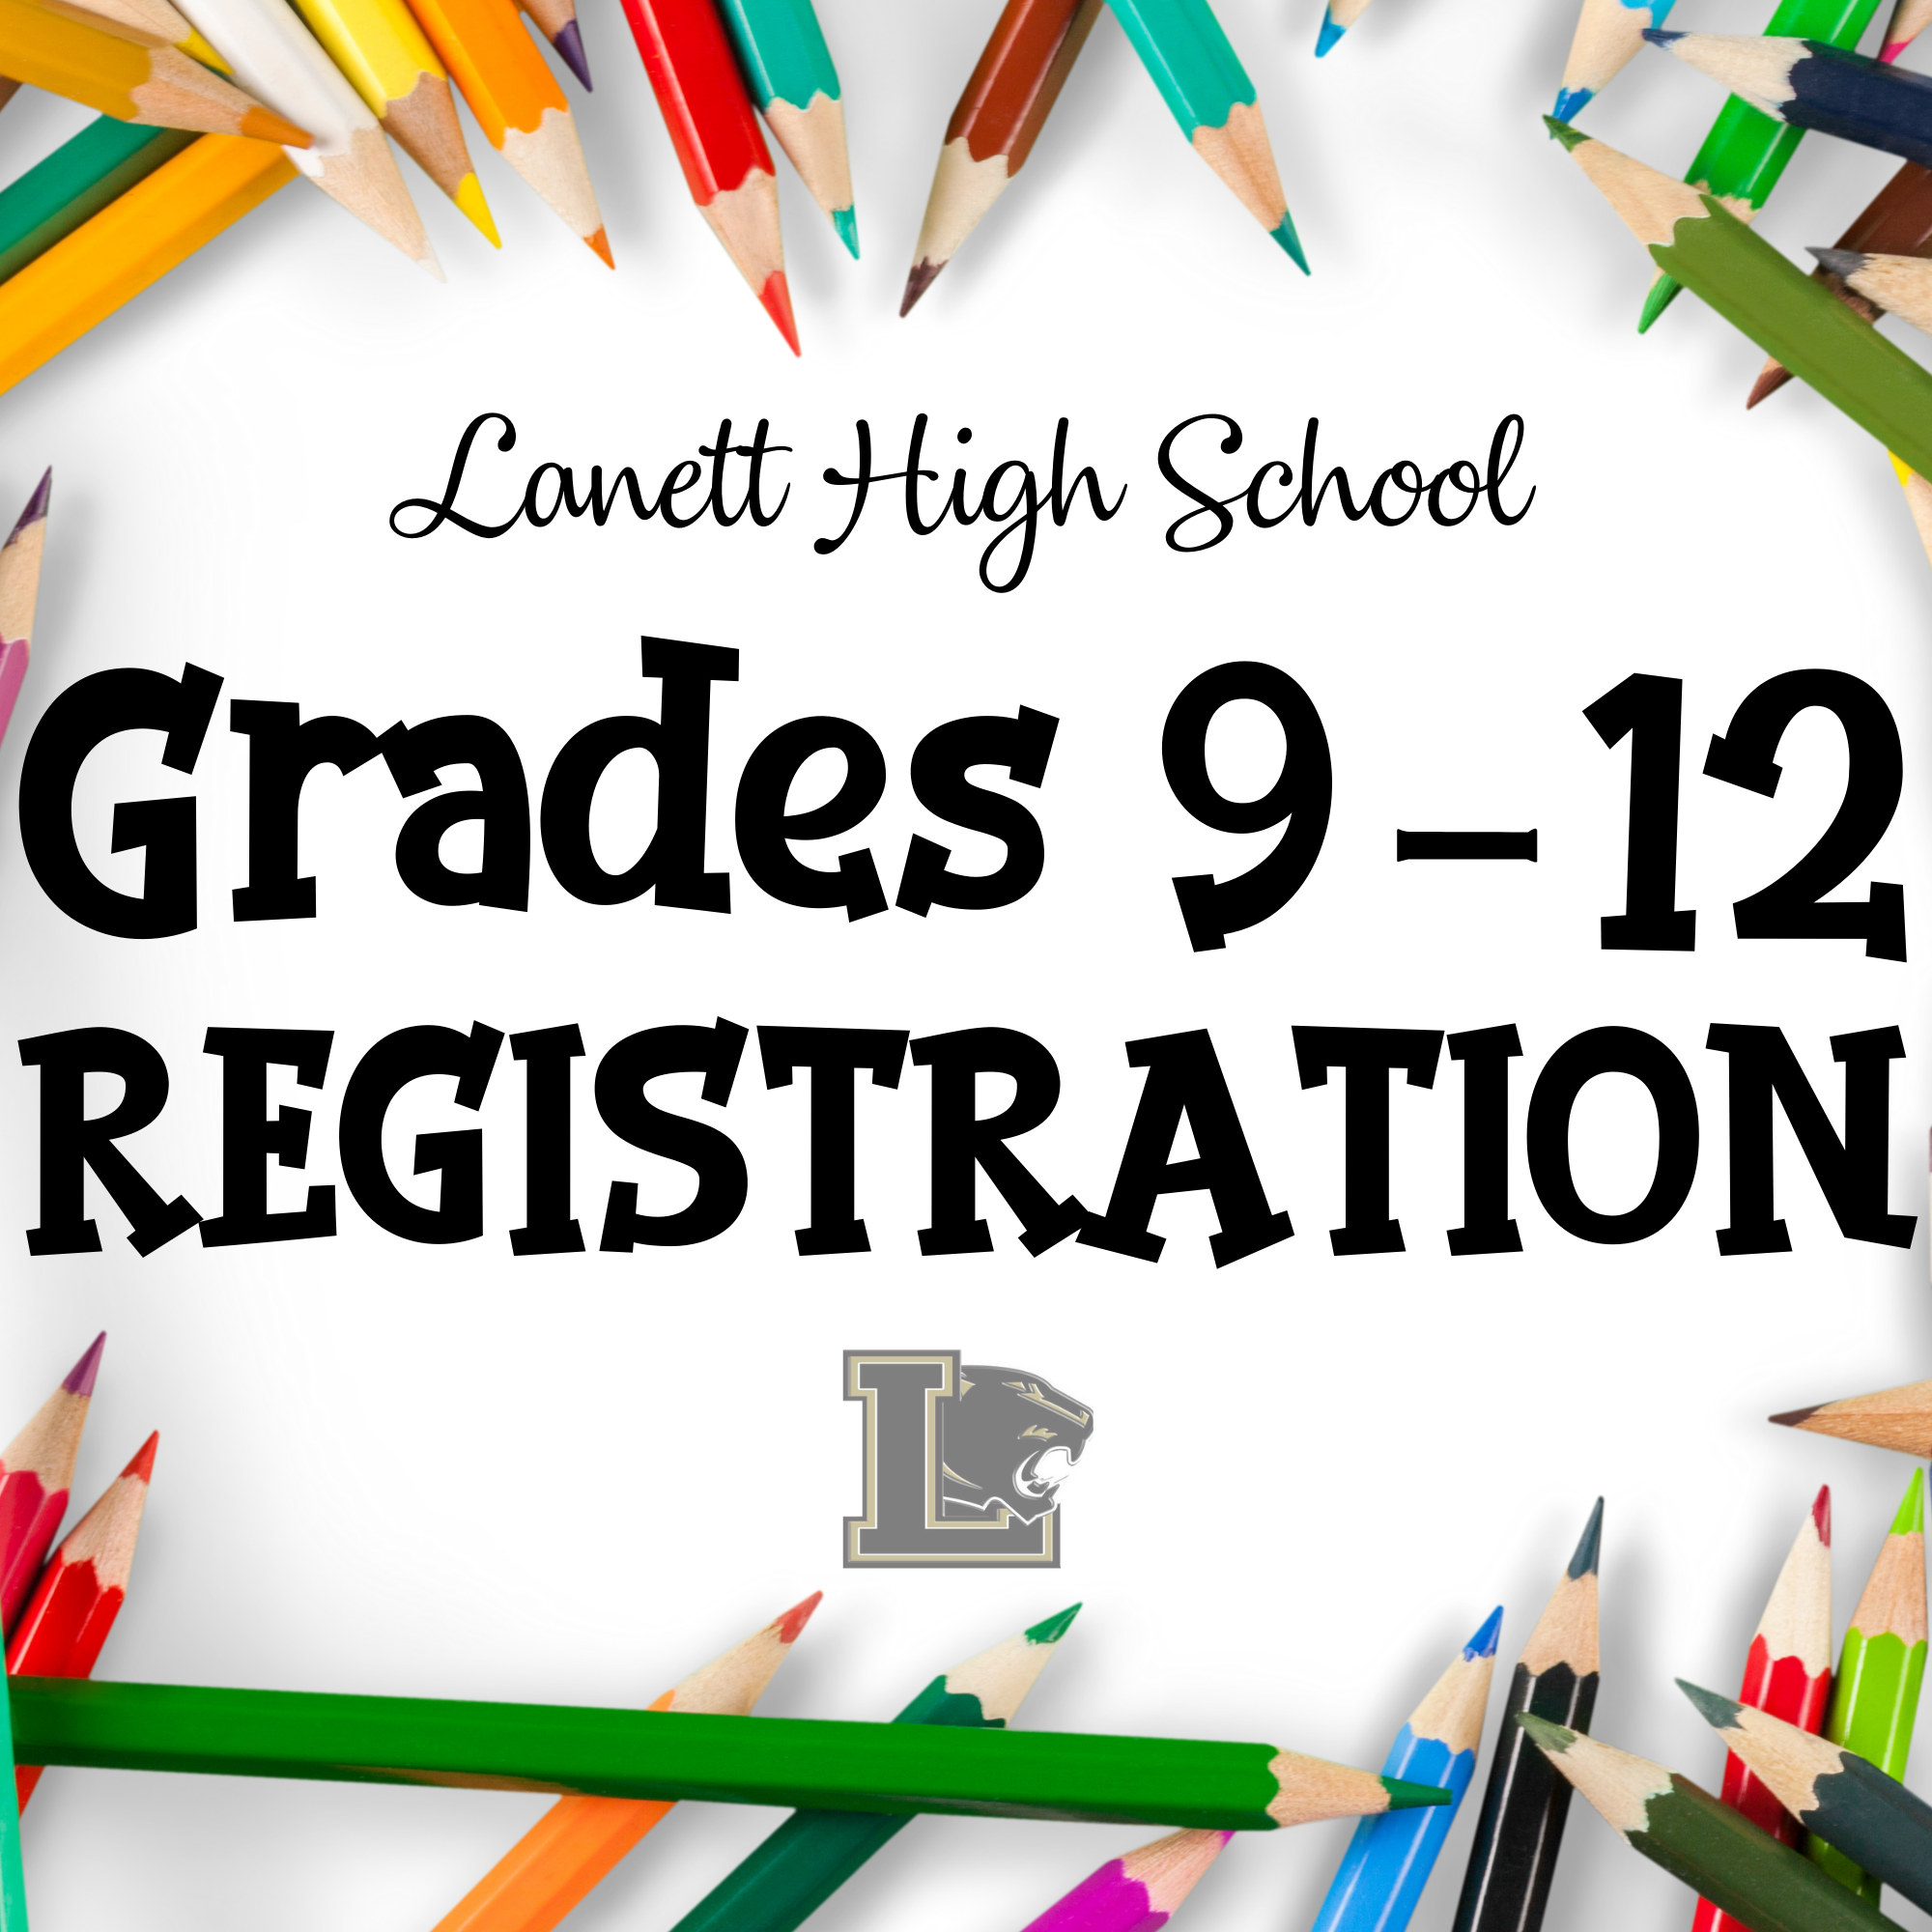 Registration for Grade 9-12